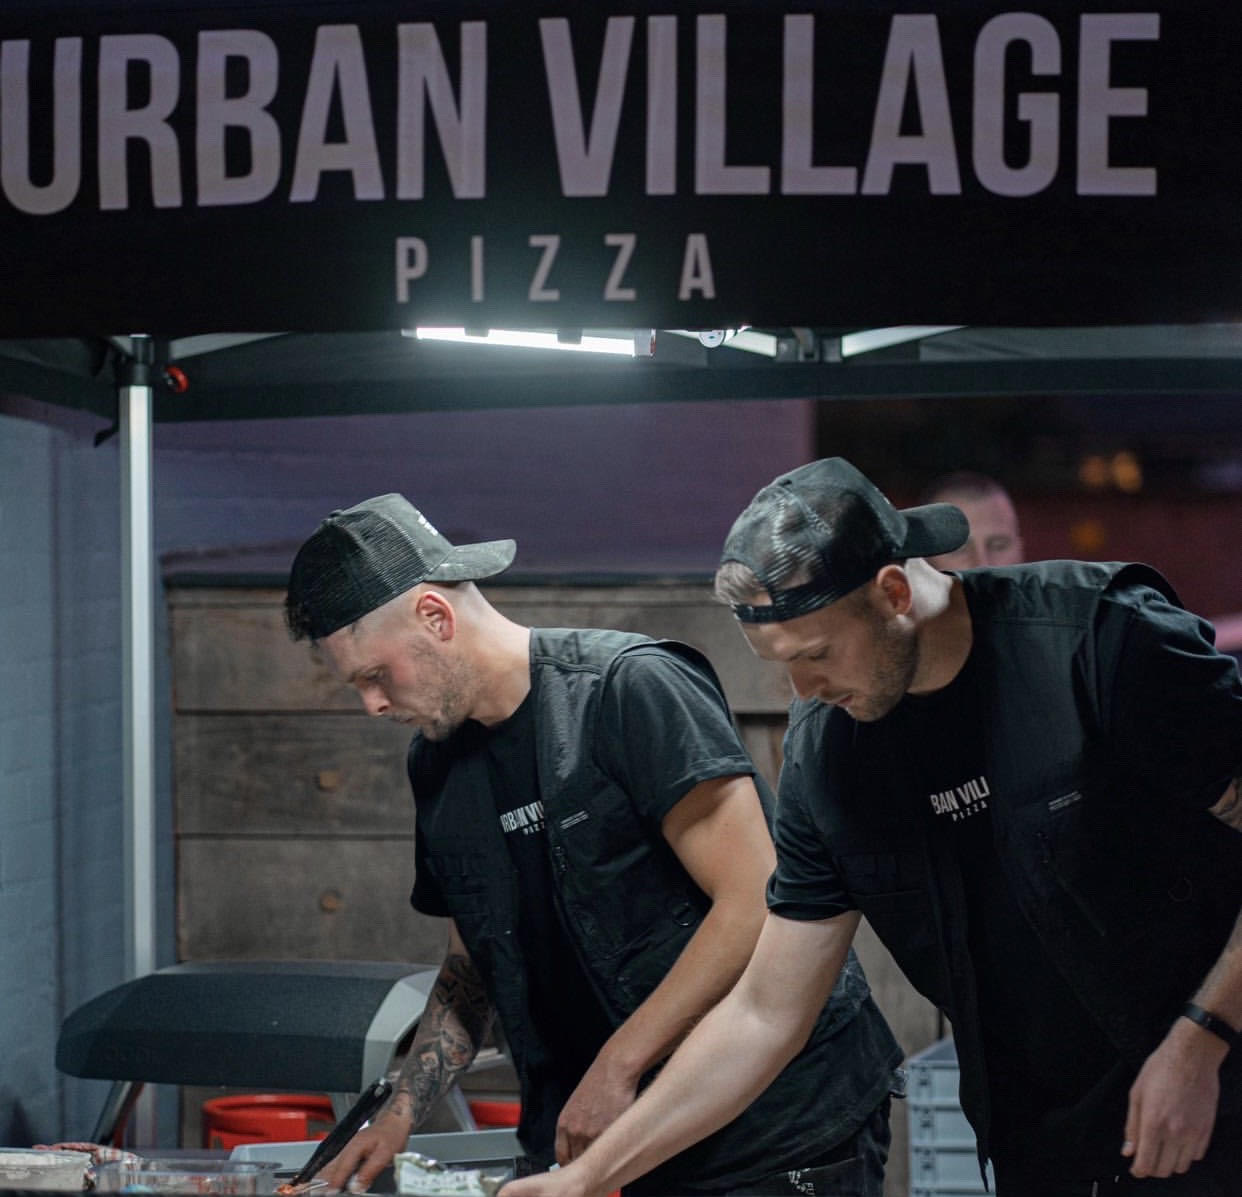 Urban Village Pizza